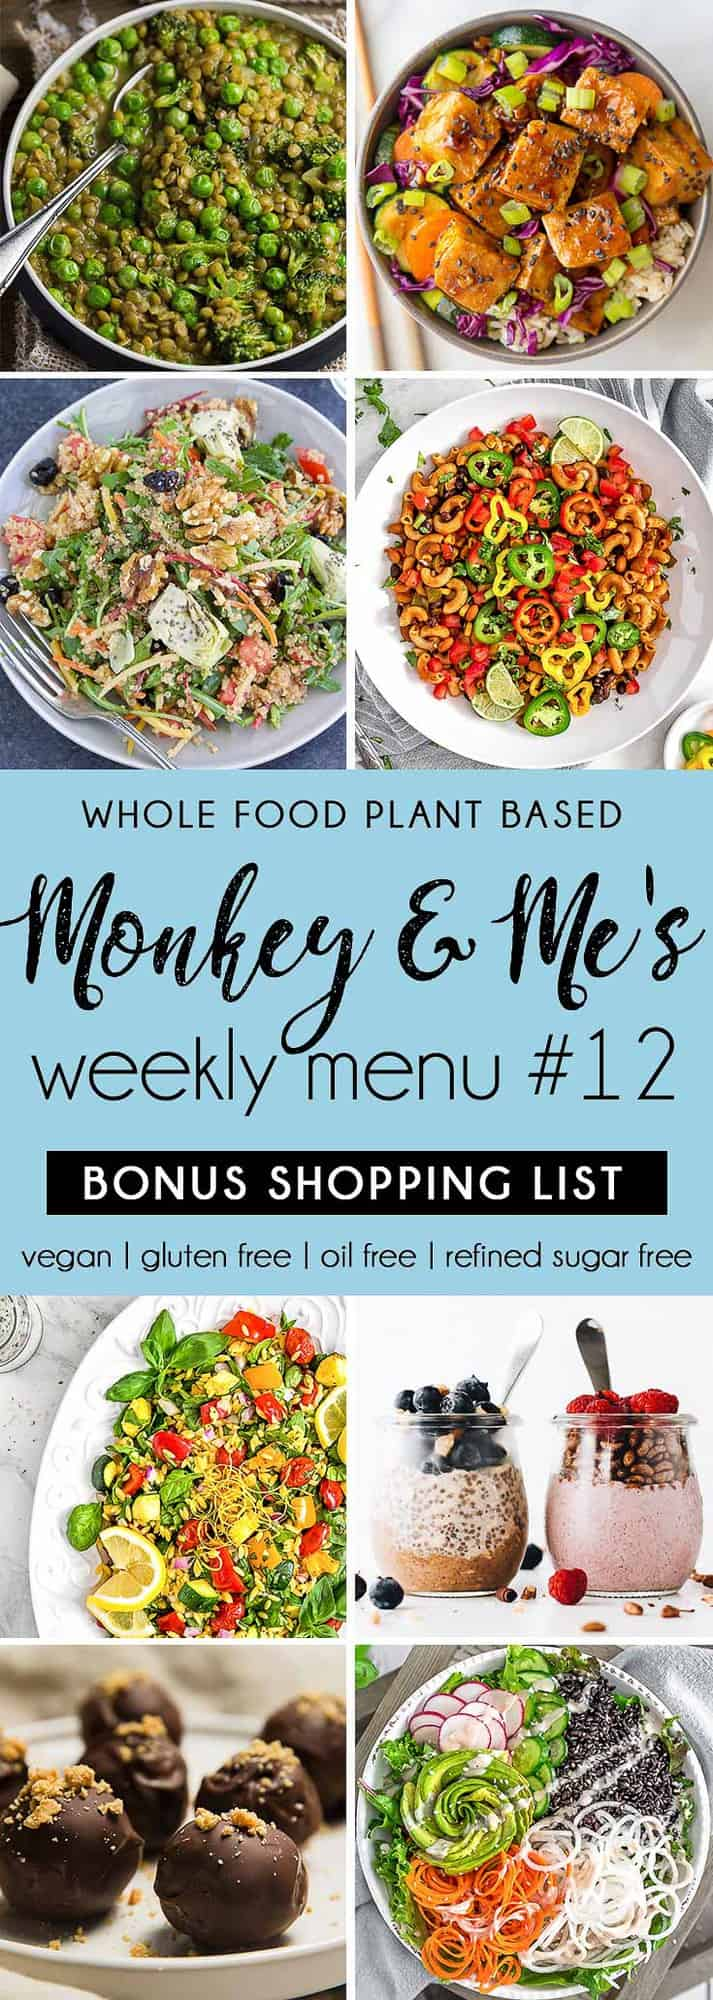 Monkey and Me's Menu, Menu 12, weekly recipe plan, menu, planner, plant based, vegan, vegetarian, whole food plant based, gluten free, recipe, wfpb, healthy, healthy vegan, oil free, no refined sugar, no oil, refined sugar free, dairy free, dinner, lunch, menu, plant based menu, vegan menu, weekly menu, meal plan, vegan meal plan, plant based meal plan, shopping list